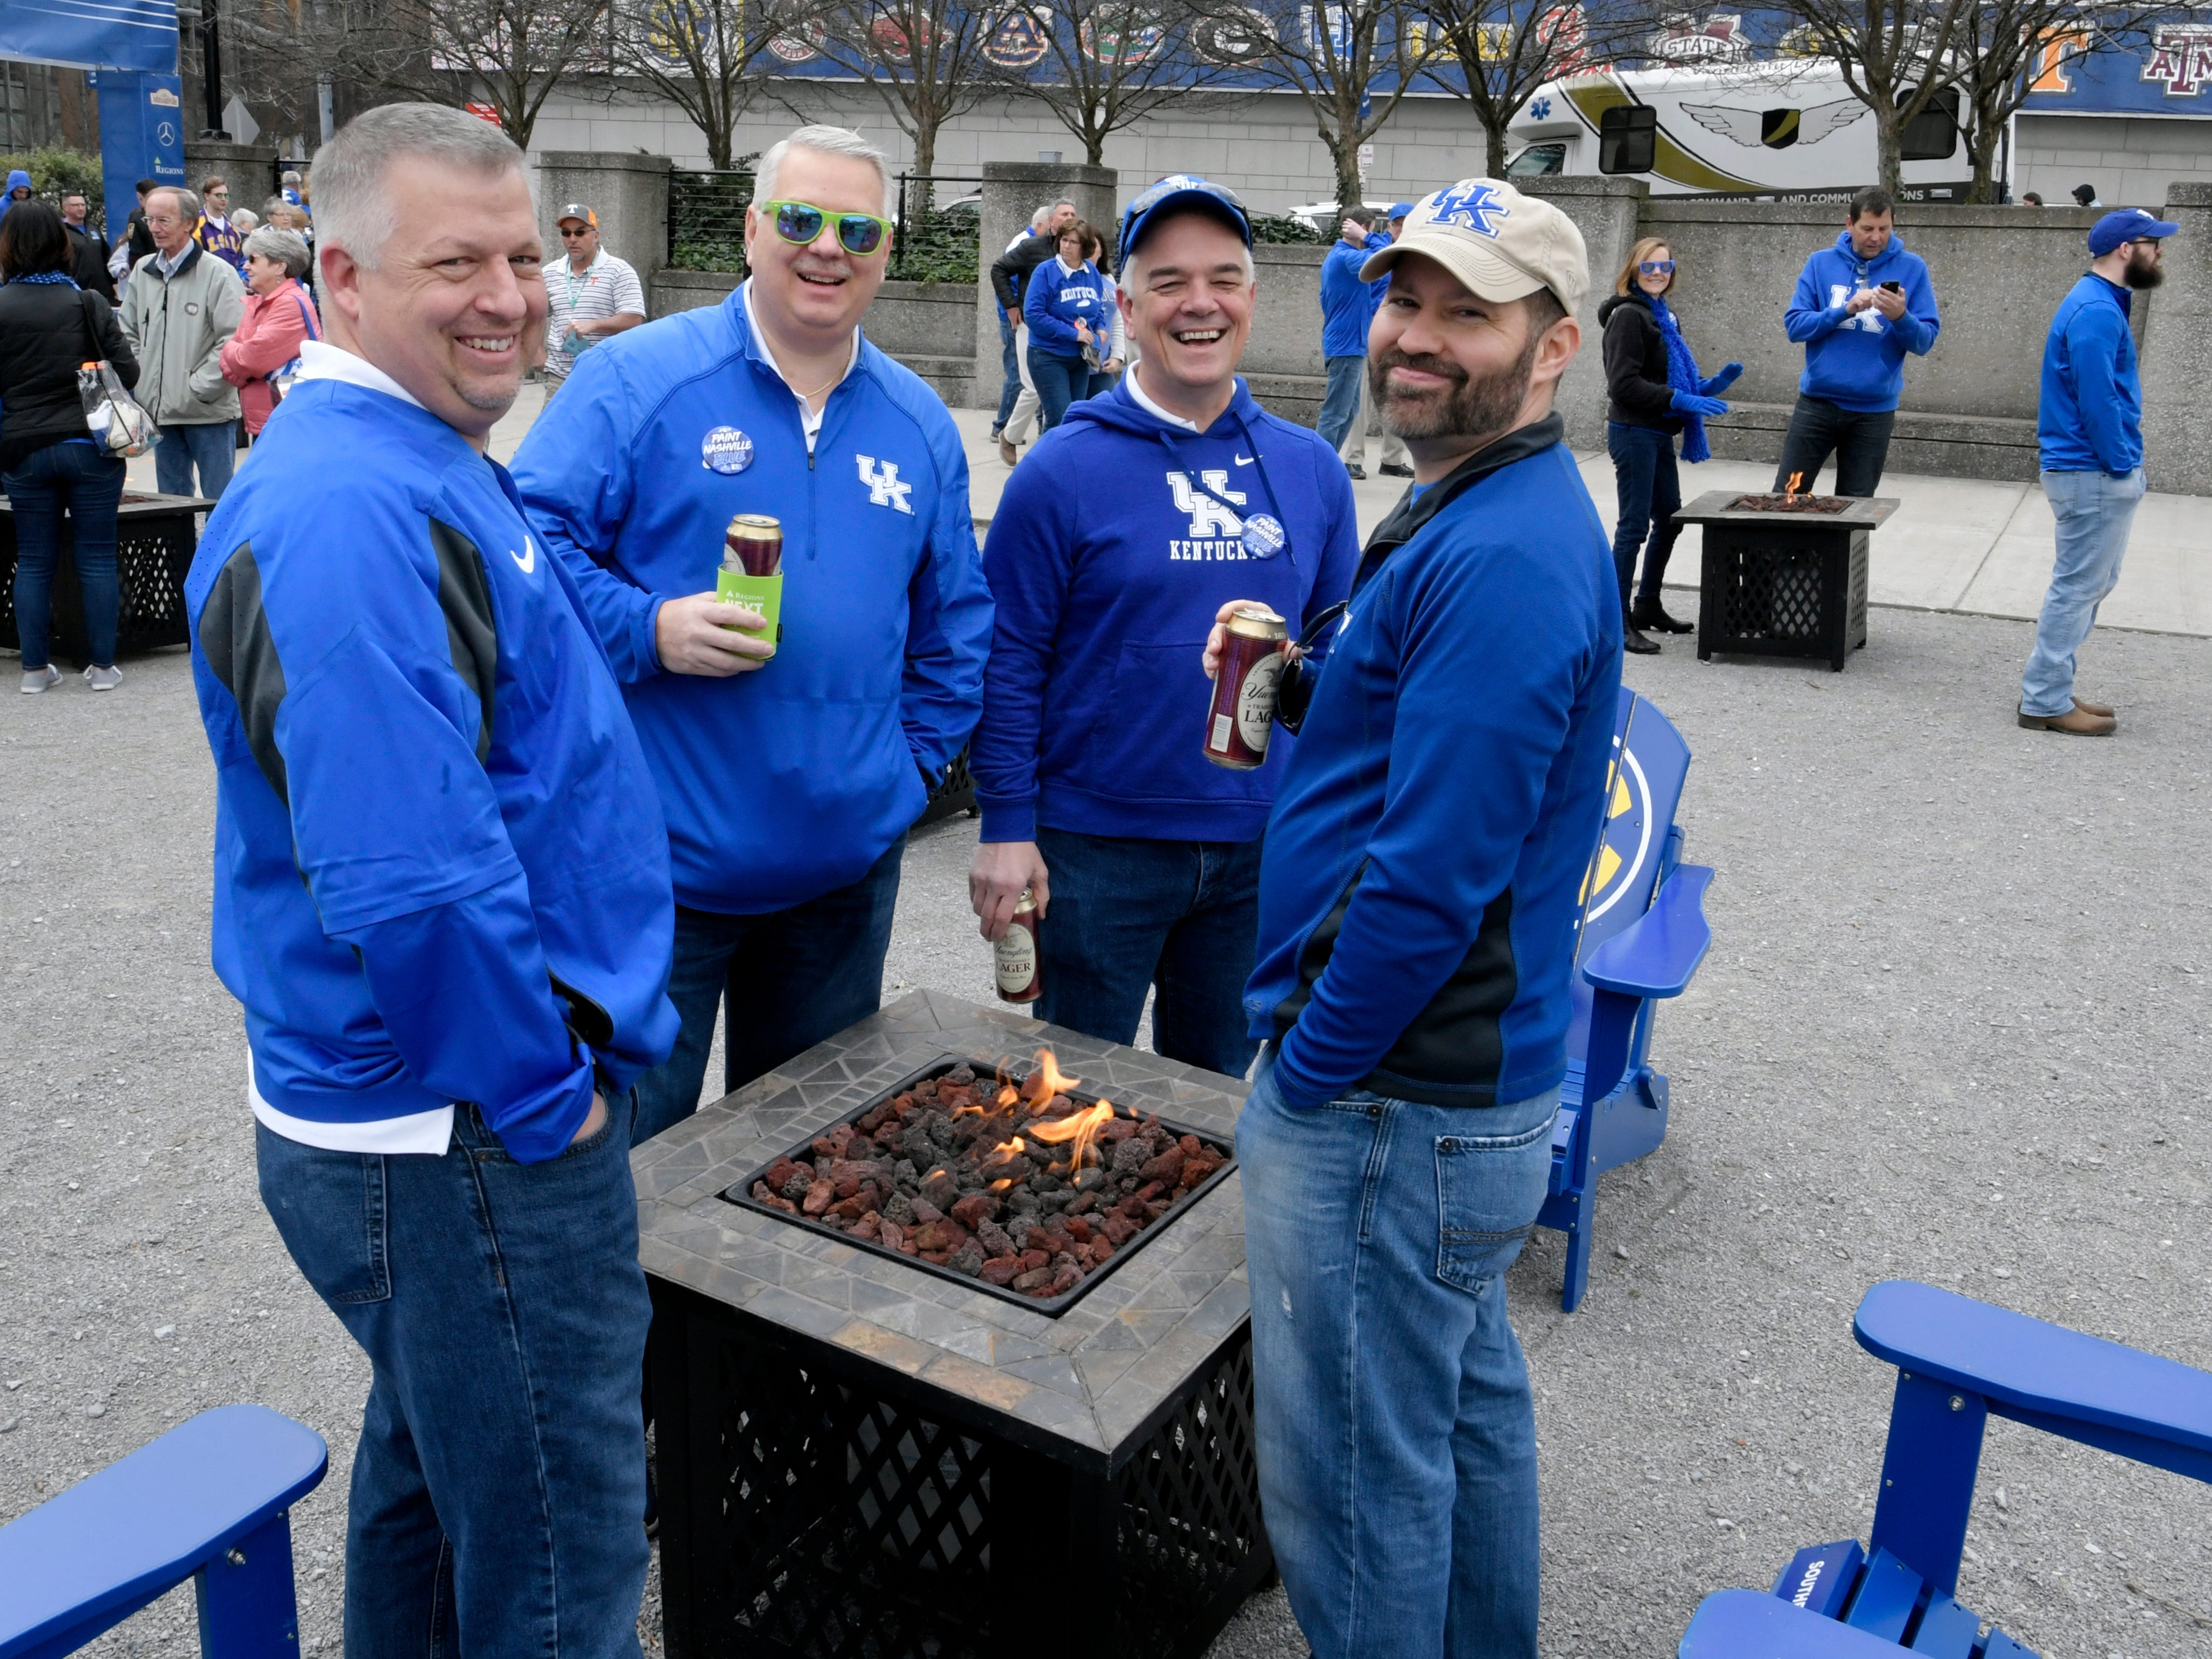 Kentucky fans gather around a fire at the SEC's Fanfare during the SEC Men's Basketball Tournament in Nashville on Friday, March 15, 2019.